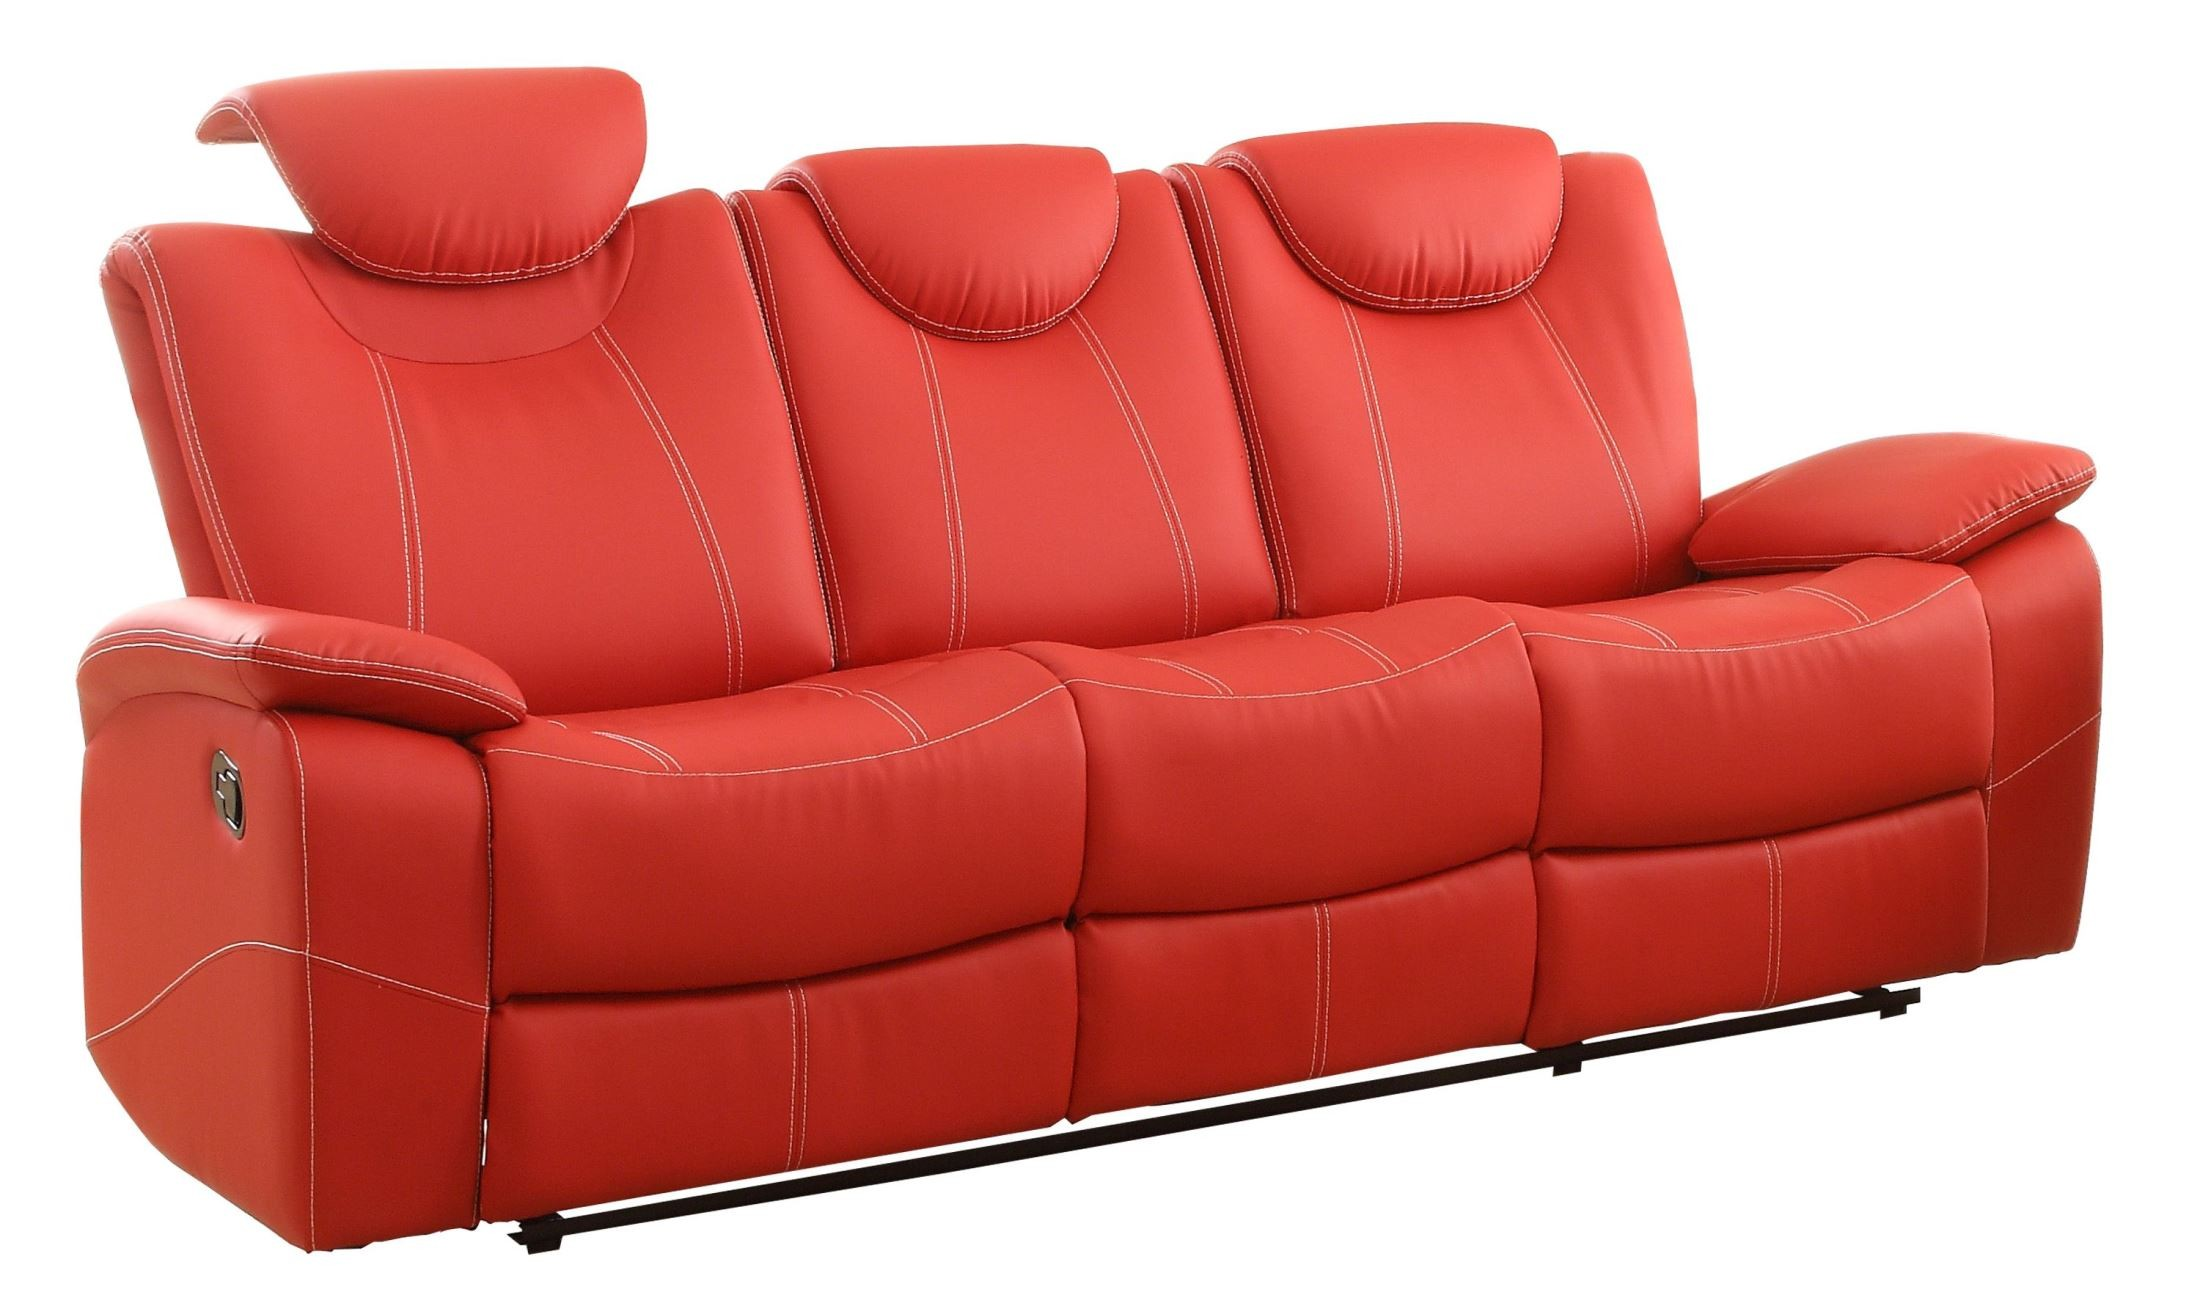 Talbot Red Double Reclining Sofa From Homelegance 8524rd 3 Coleman Furniture